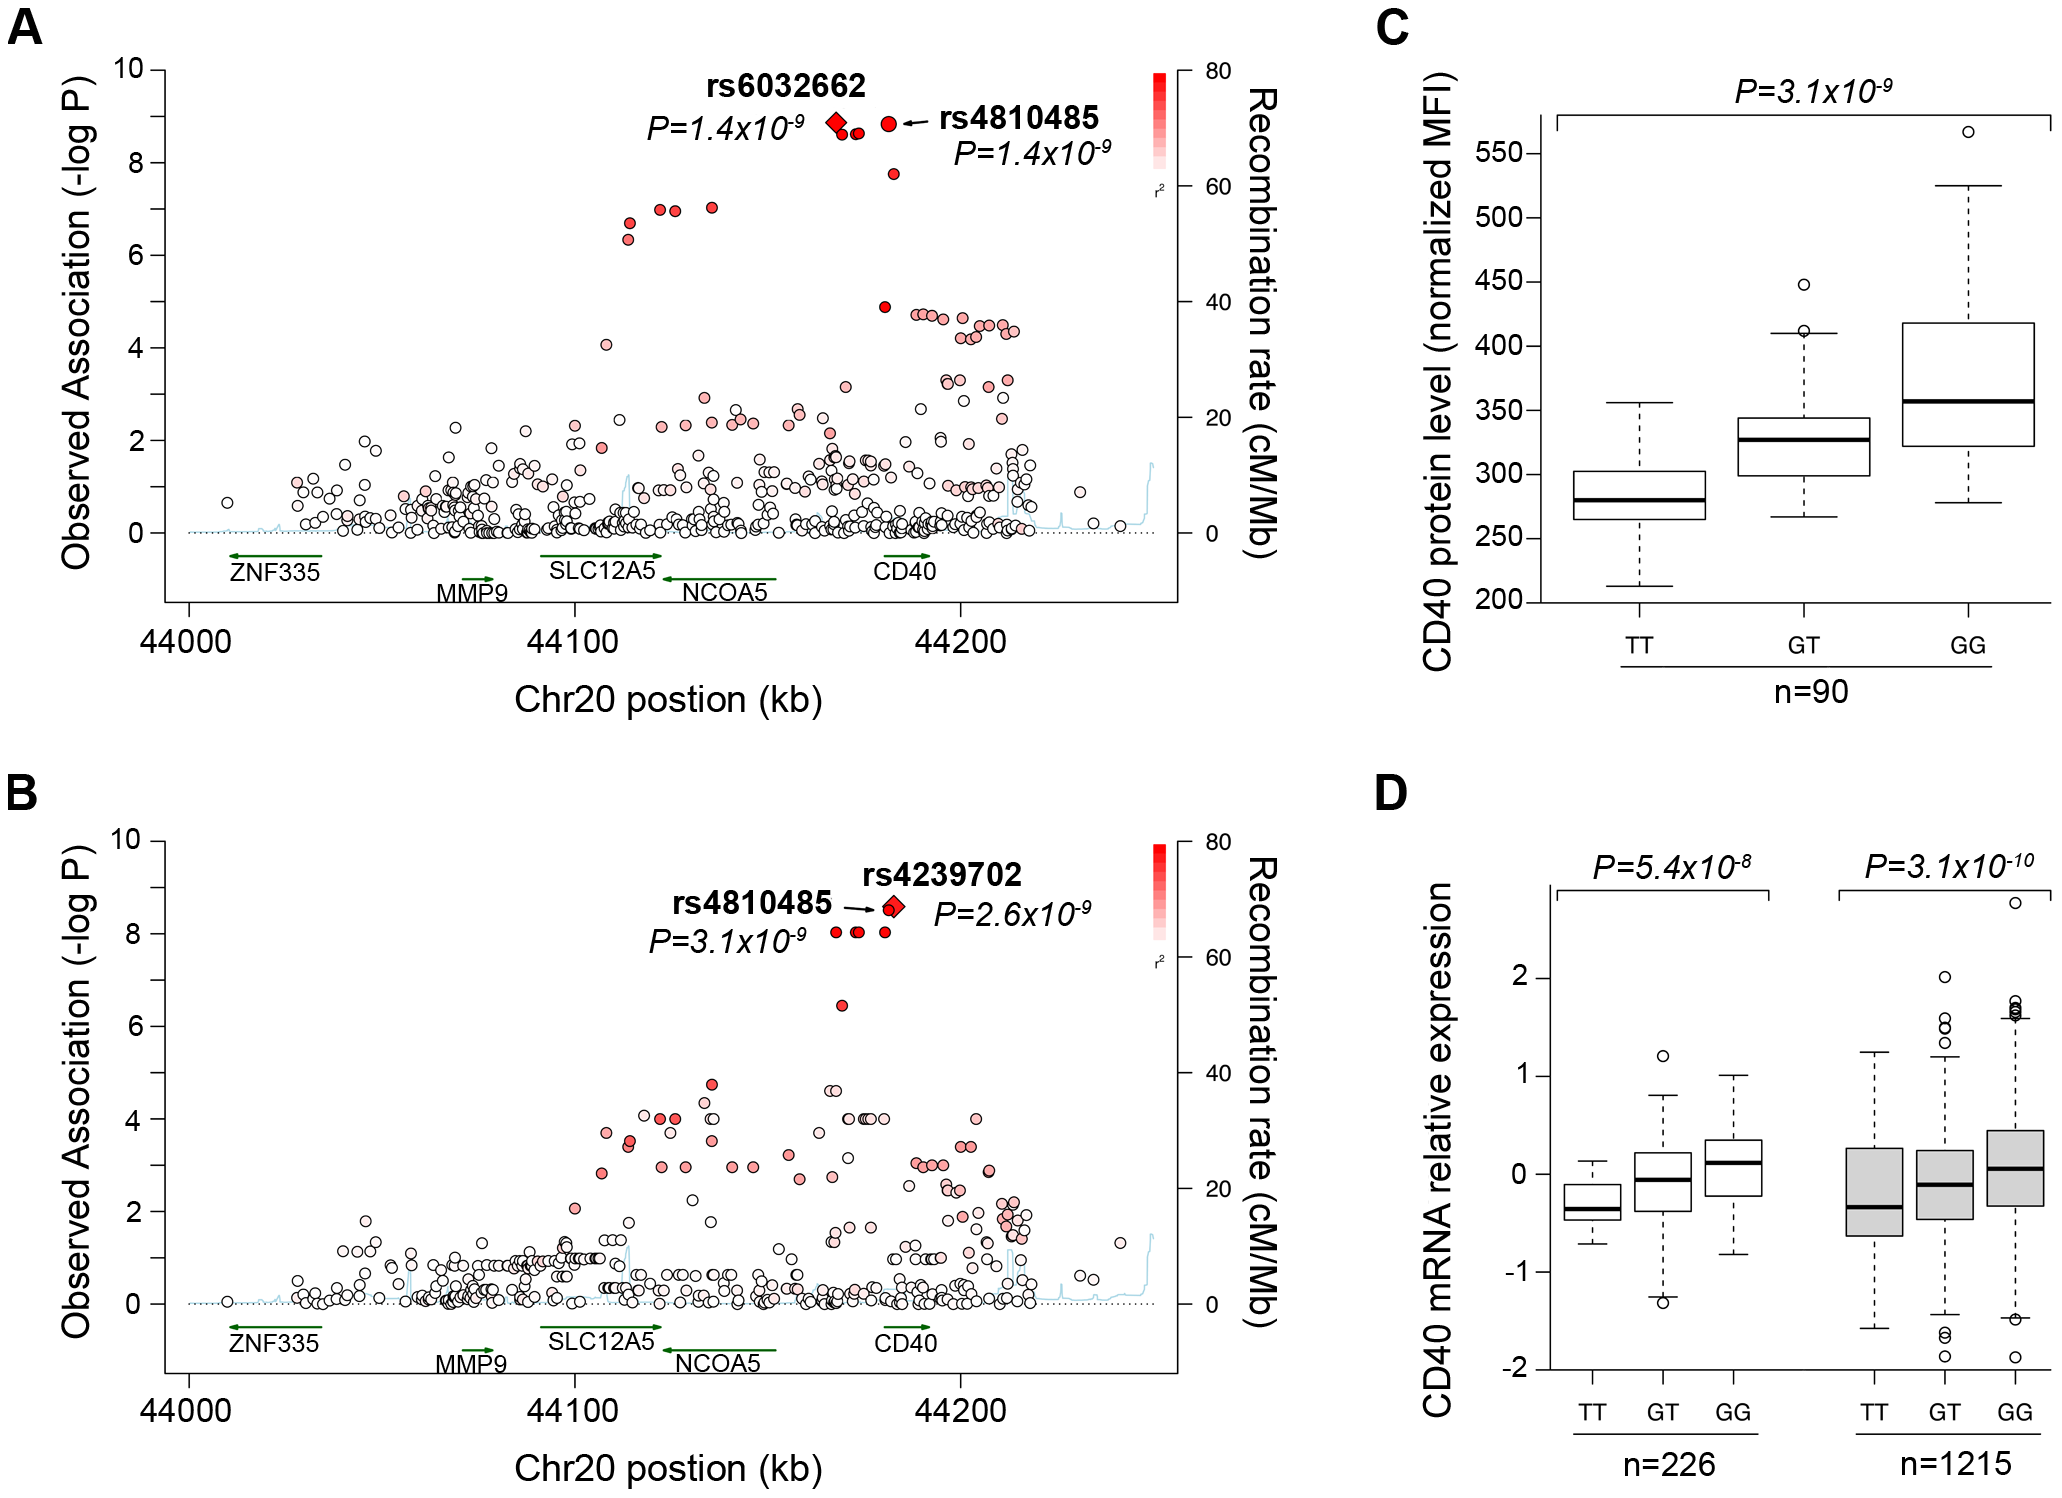 Genetic data on risk of RA and CD40 protein levels.